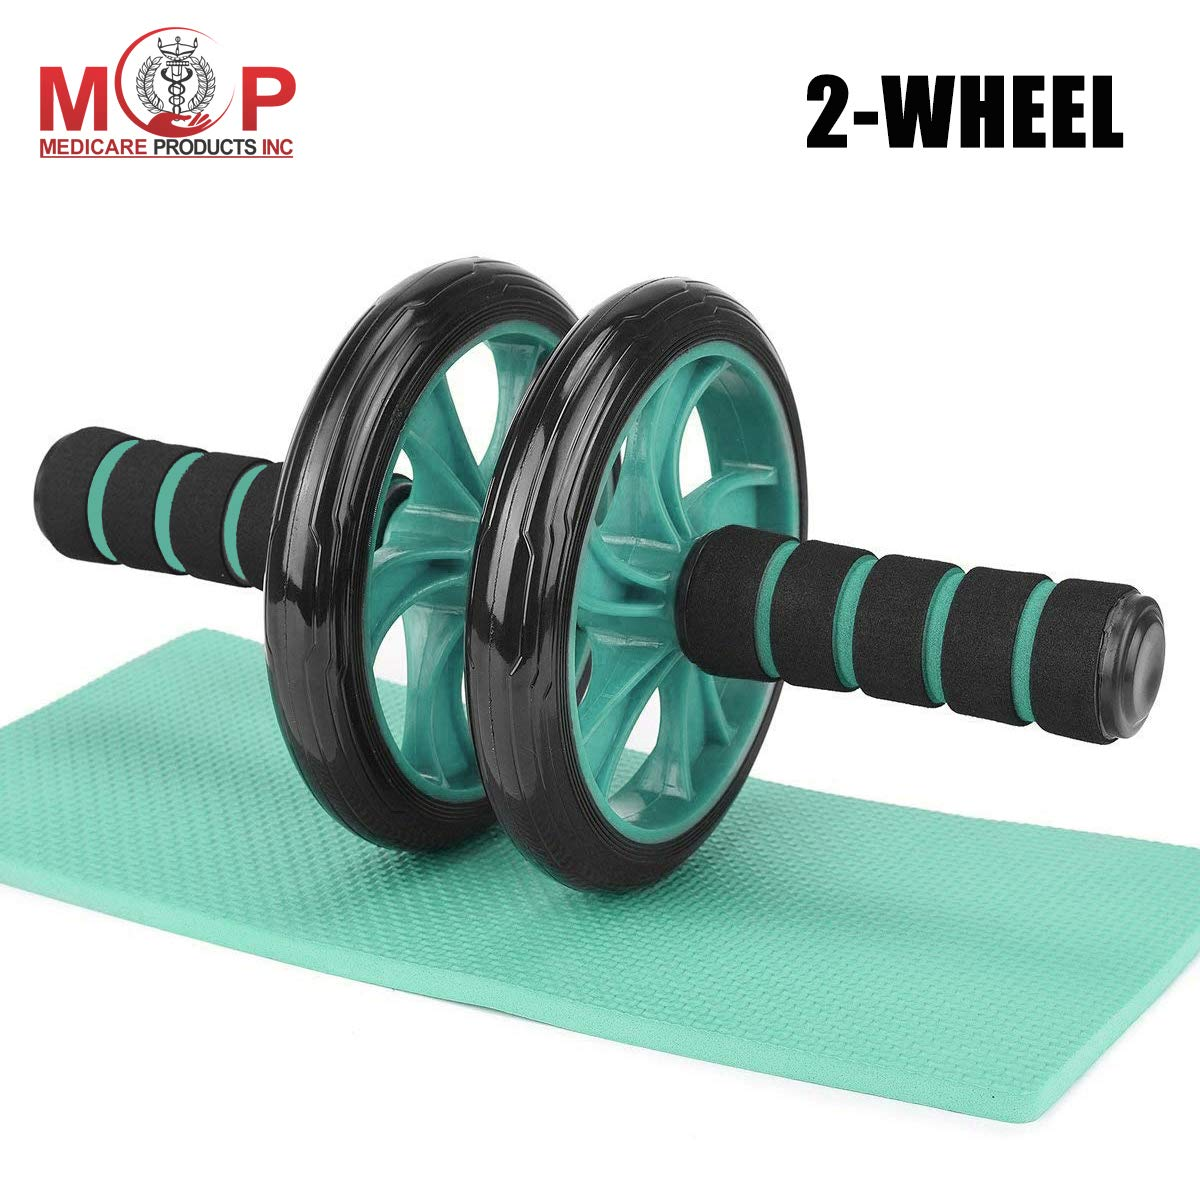 Body Fitness Strength Training Machine AB Wheel Gym Tool,for Body Building Fitness AB Carver Pro Roller,AB Roller Wheel And Mat,Ab Roller Abdominal Trainer,With Extra Thick Knee Pad Mat